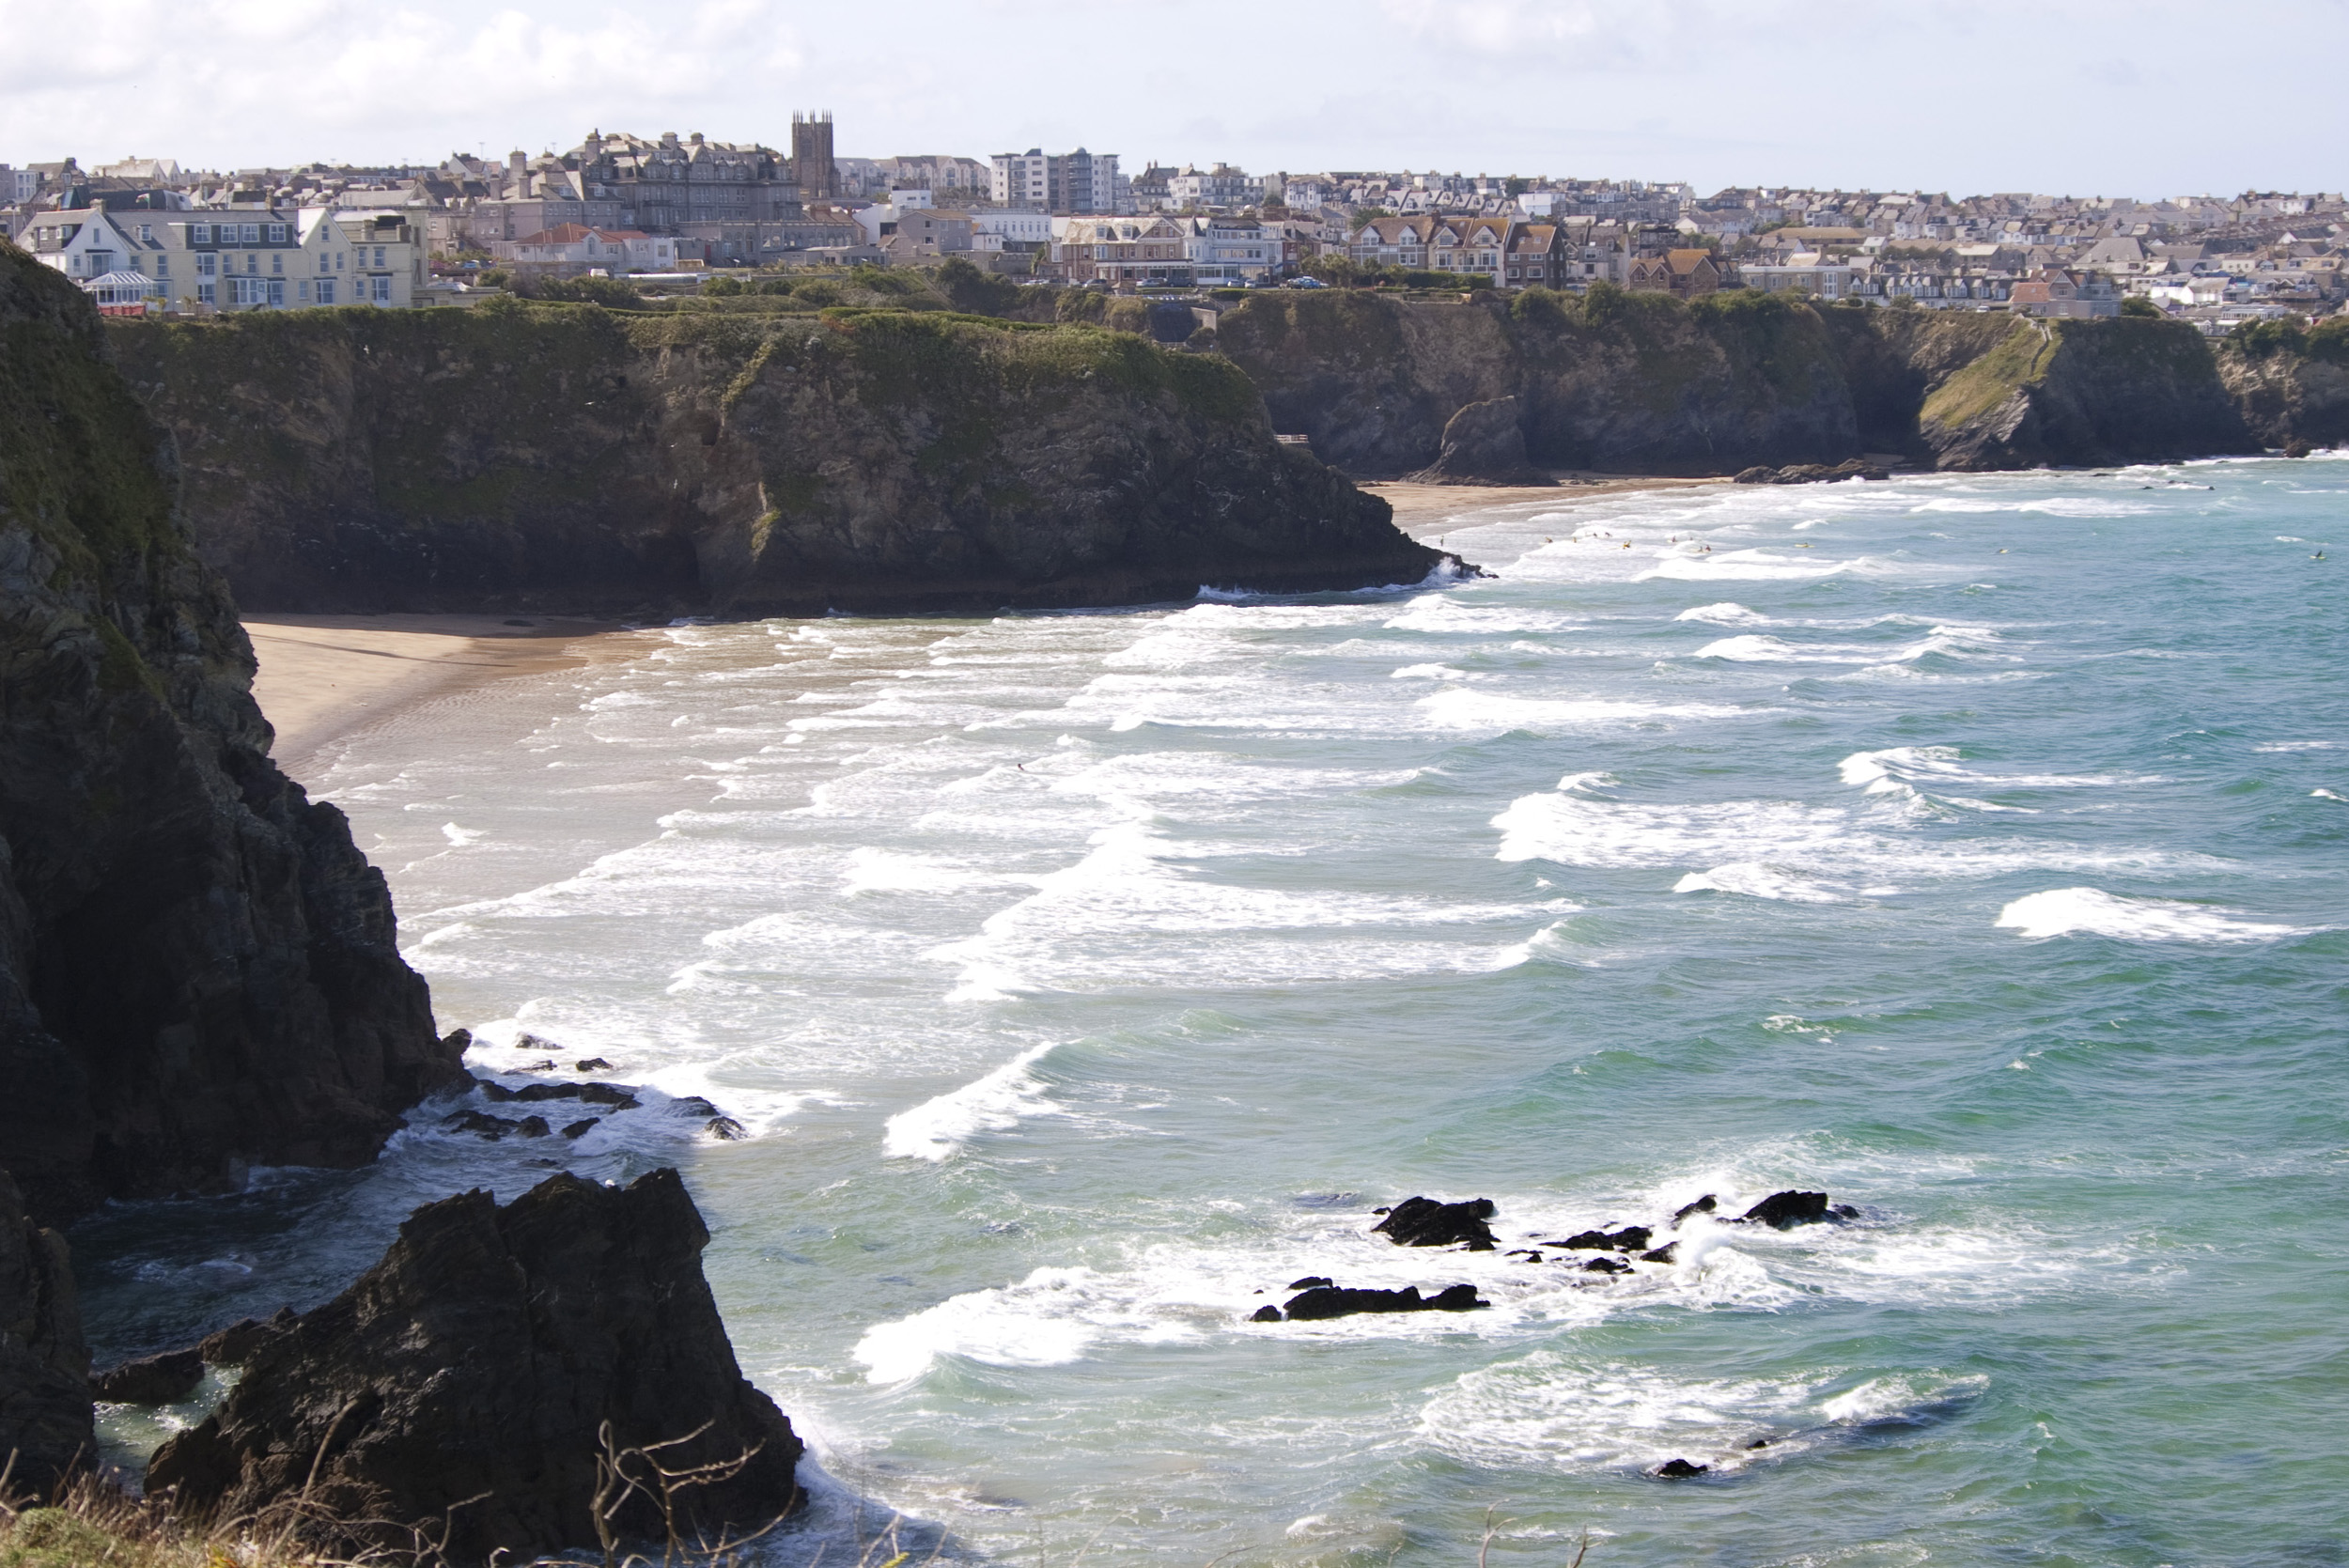 cornish coastal town of newquay standing on top of tall cliffs